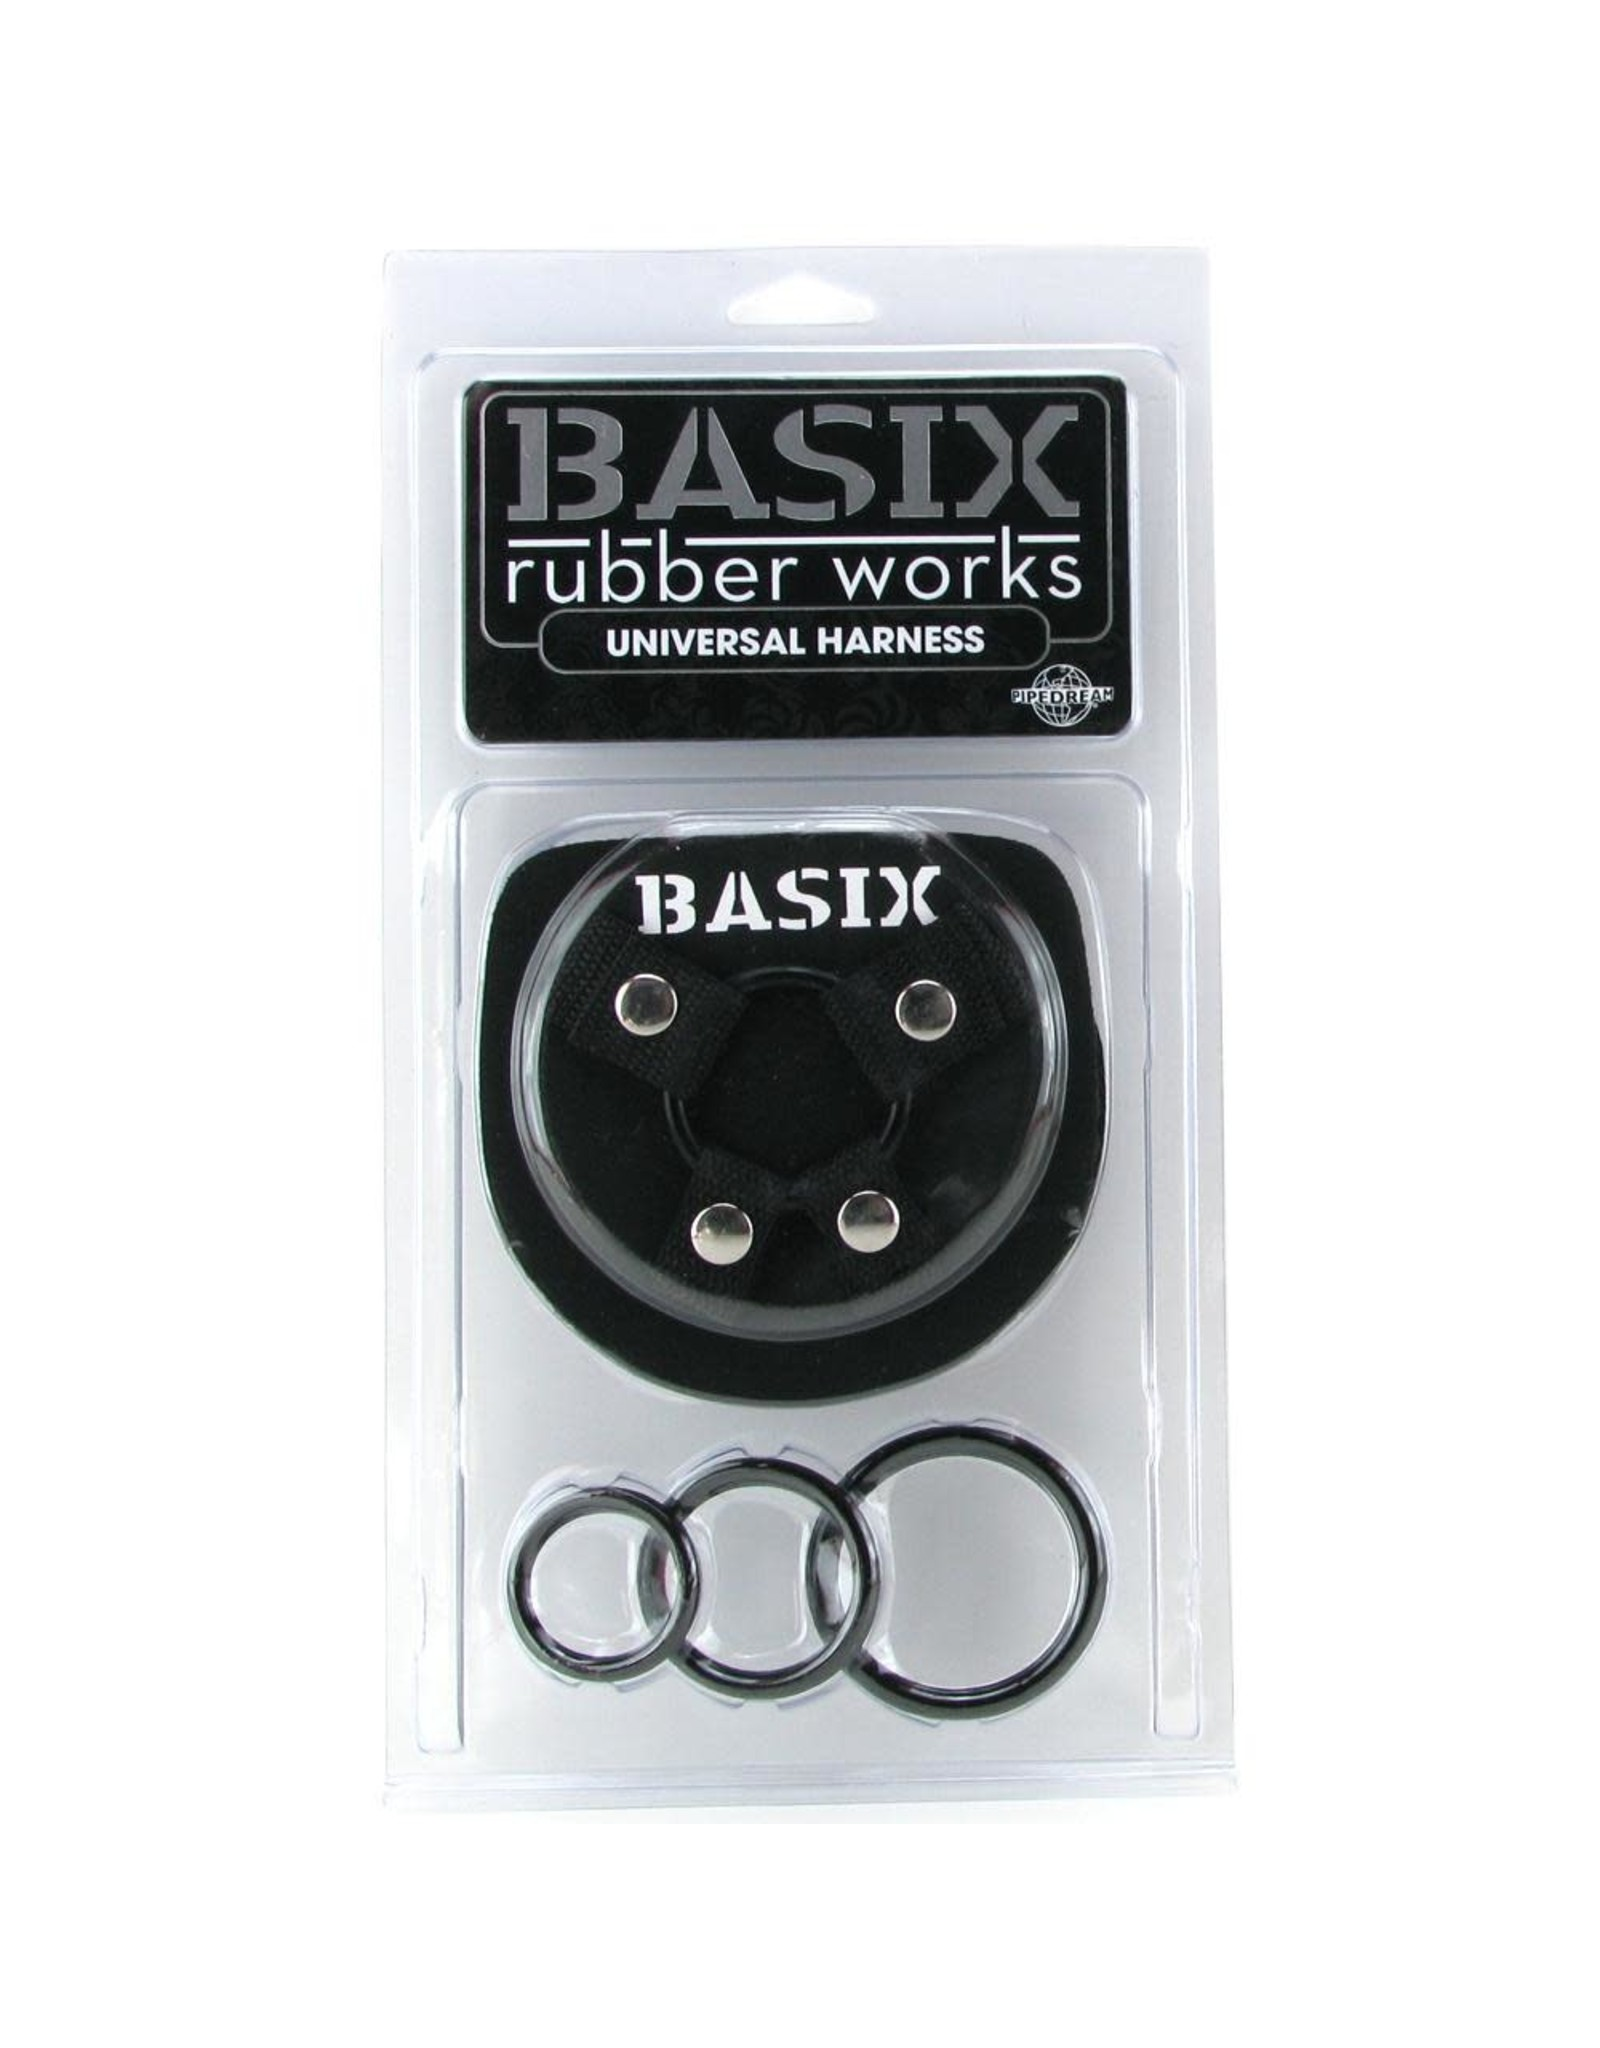 BASIX UNIVERSAL HARNESS - ONE SIZE